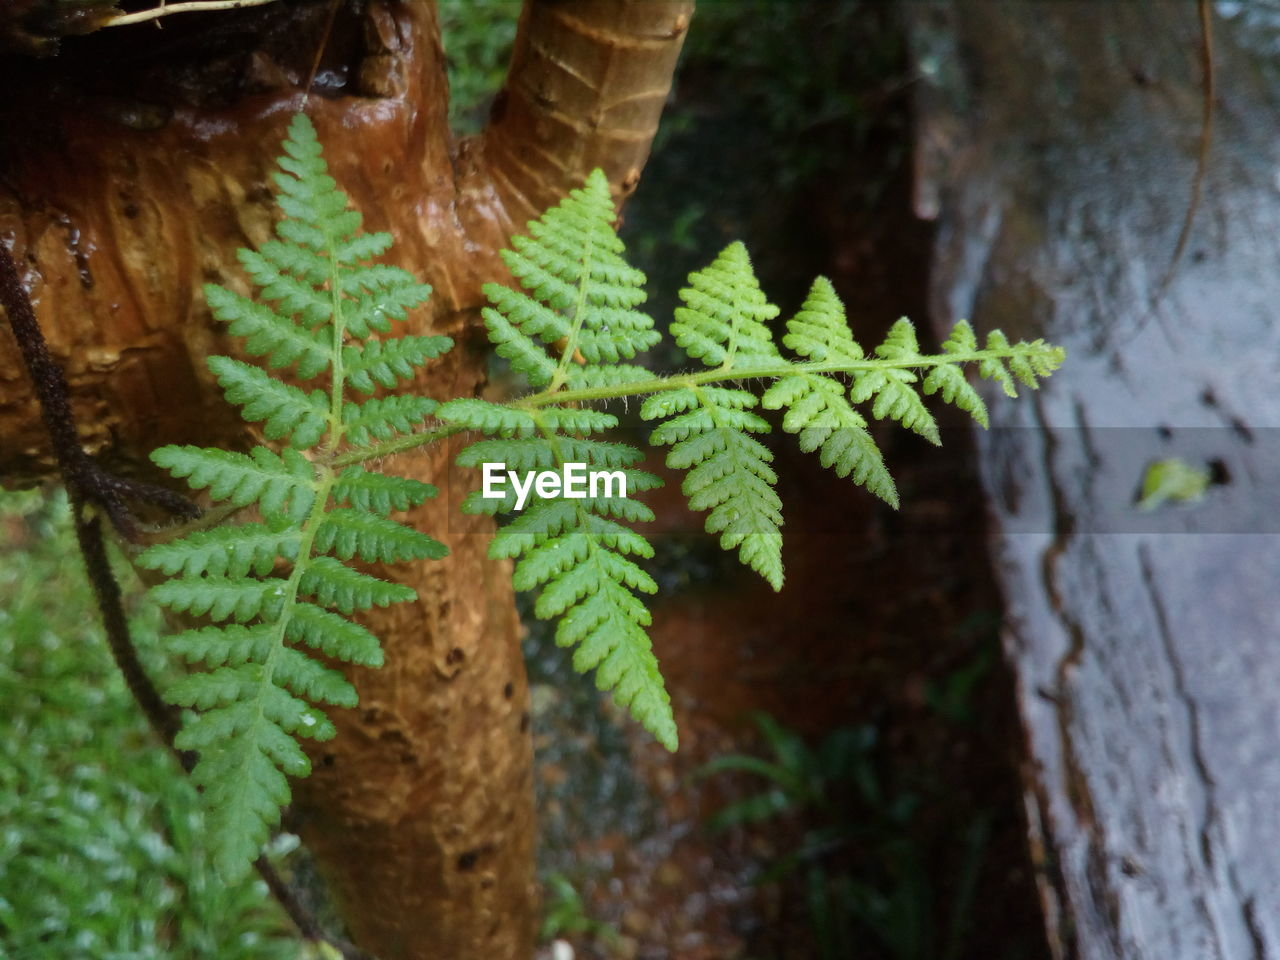 plant, growth, green color, close-up, focus on foreground, nature, no people, leaf, plant part, day, tree, fern, beauty in nature, outdoors, tree trunk, trunk, selective focus, freshness, fragility, branch